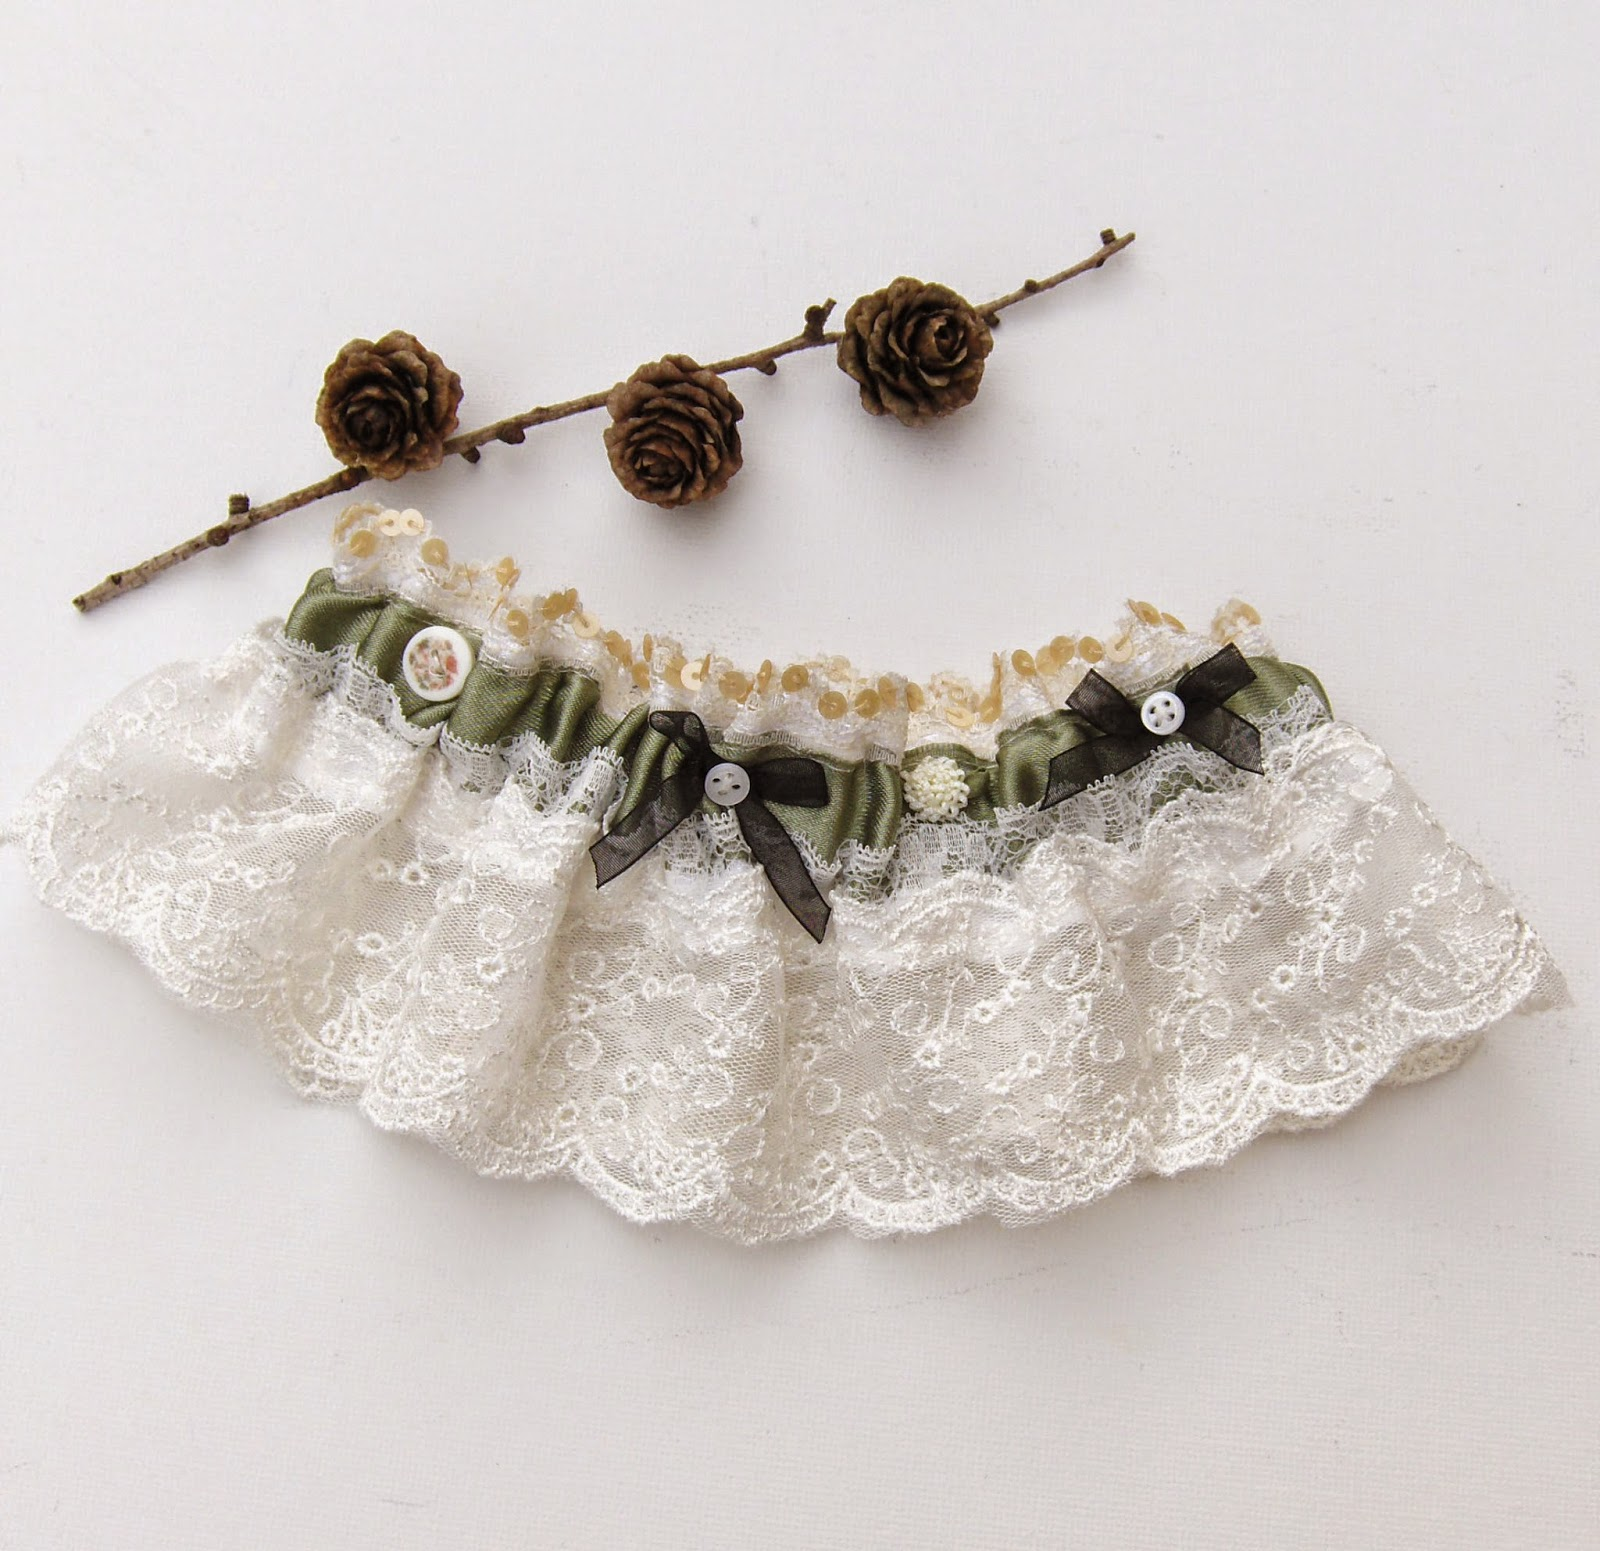 https://www.etsy.com/uk/listing/203990783/woodland-wedding-bridal-garter-moss?ref=shop_home_active_6